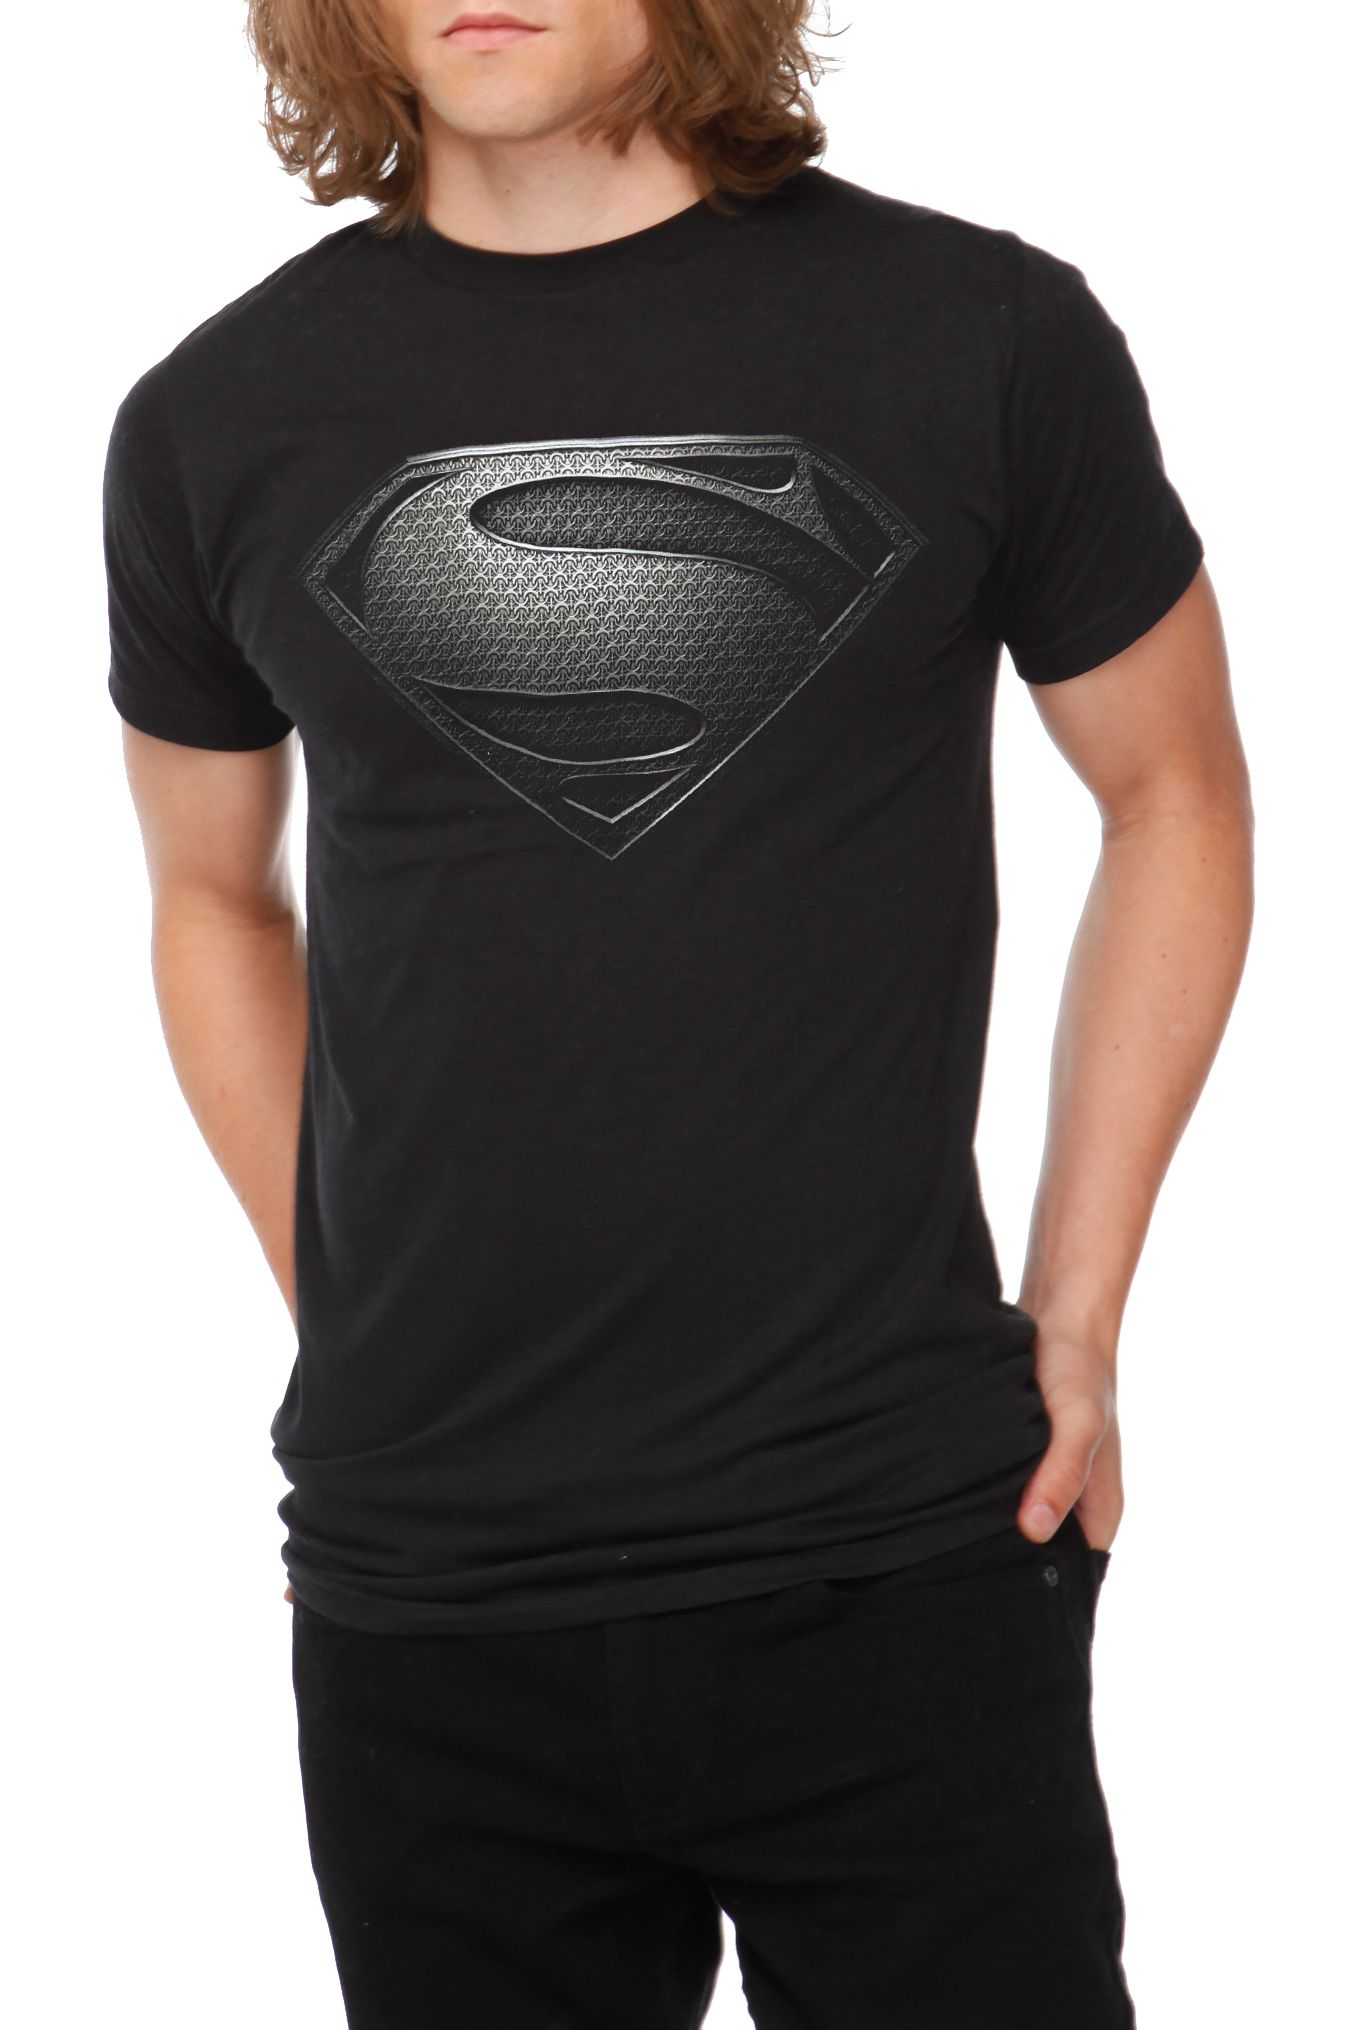 6ee8a217 DC Comics Superman Man Of Steel Silver Logo T-Shirt $20.50 | My ...